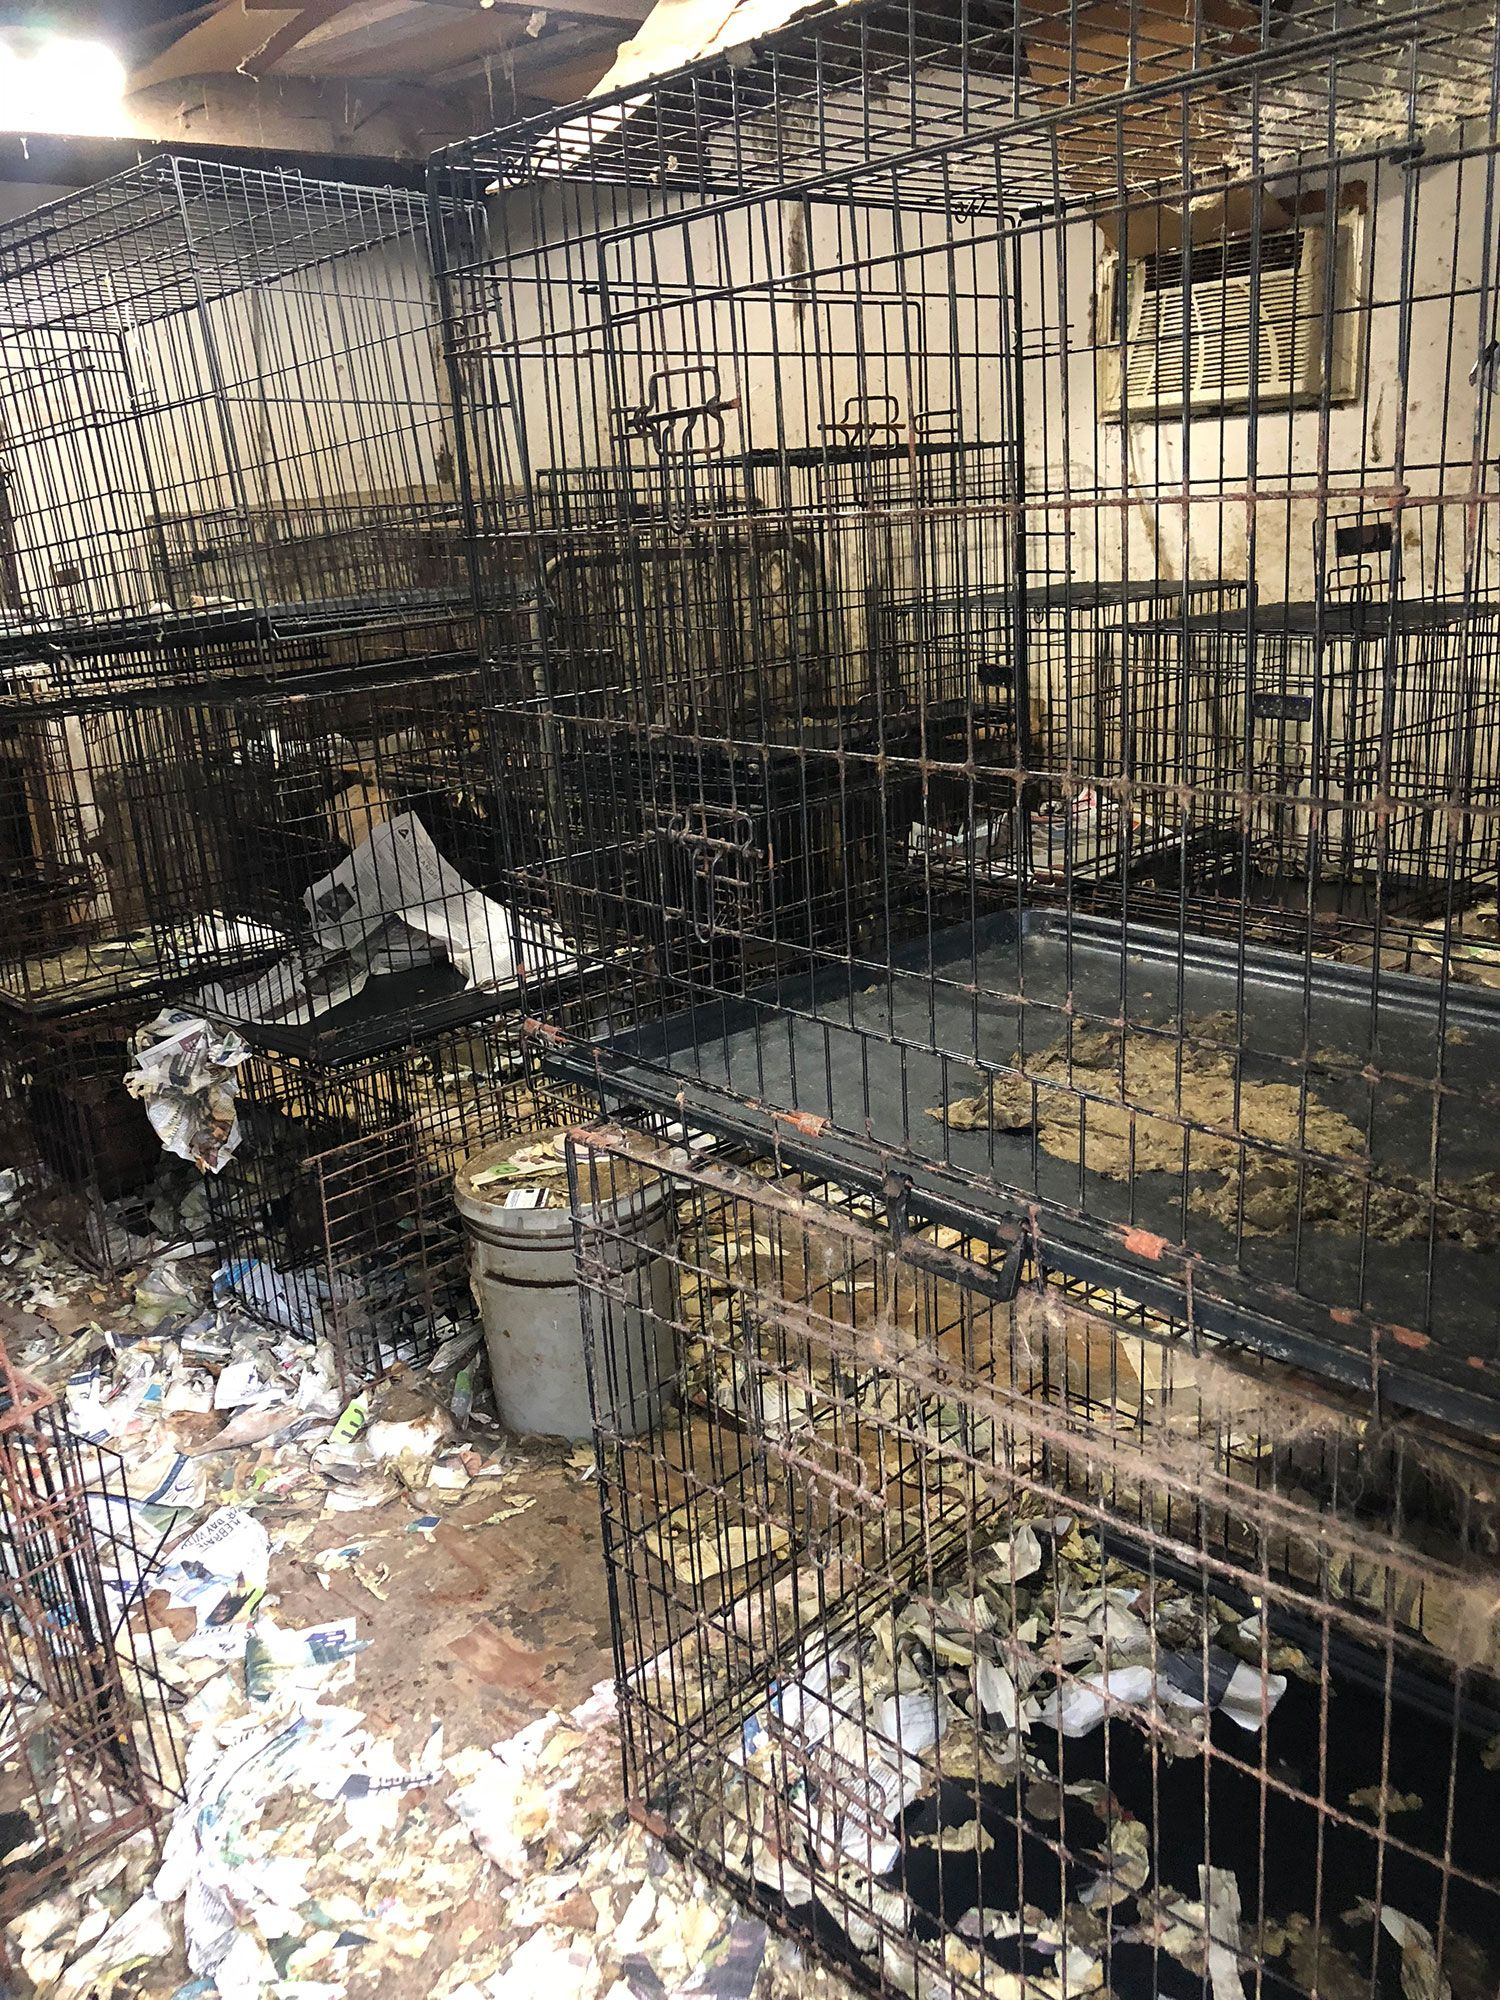 More Than 80 Dogs Including Days Old Puppies Rescued From